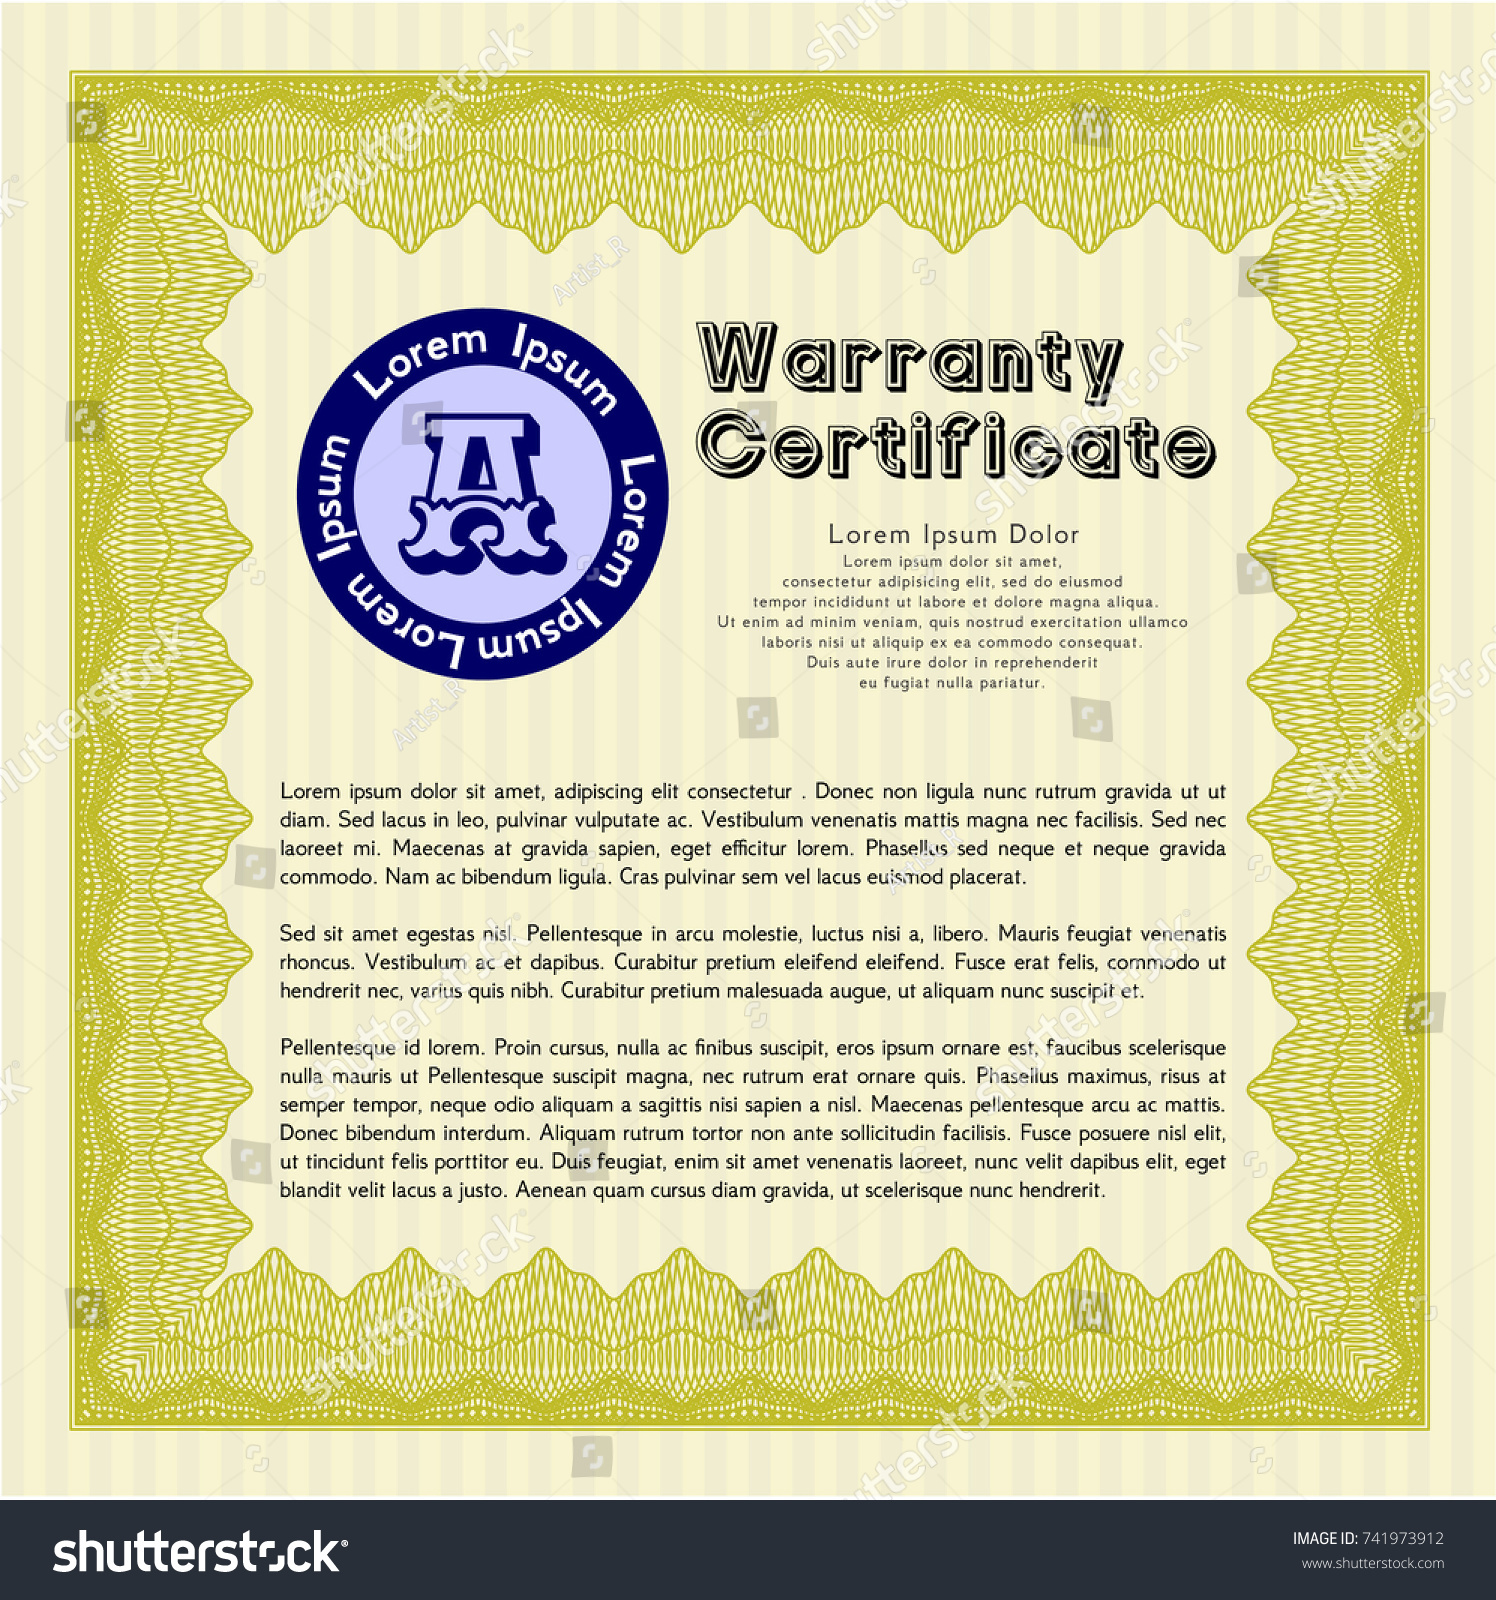 Yellow formal warranty certificate template lovely stock vector yellow formal warranty certificate template lovely design vector illustration easy to print 1betcityfo Choice Image